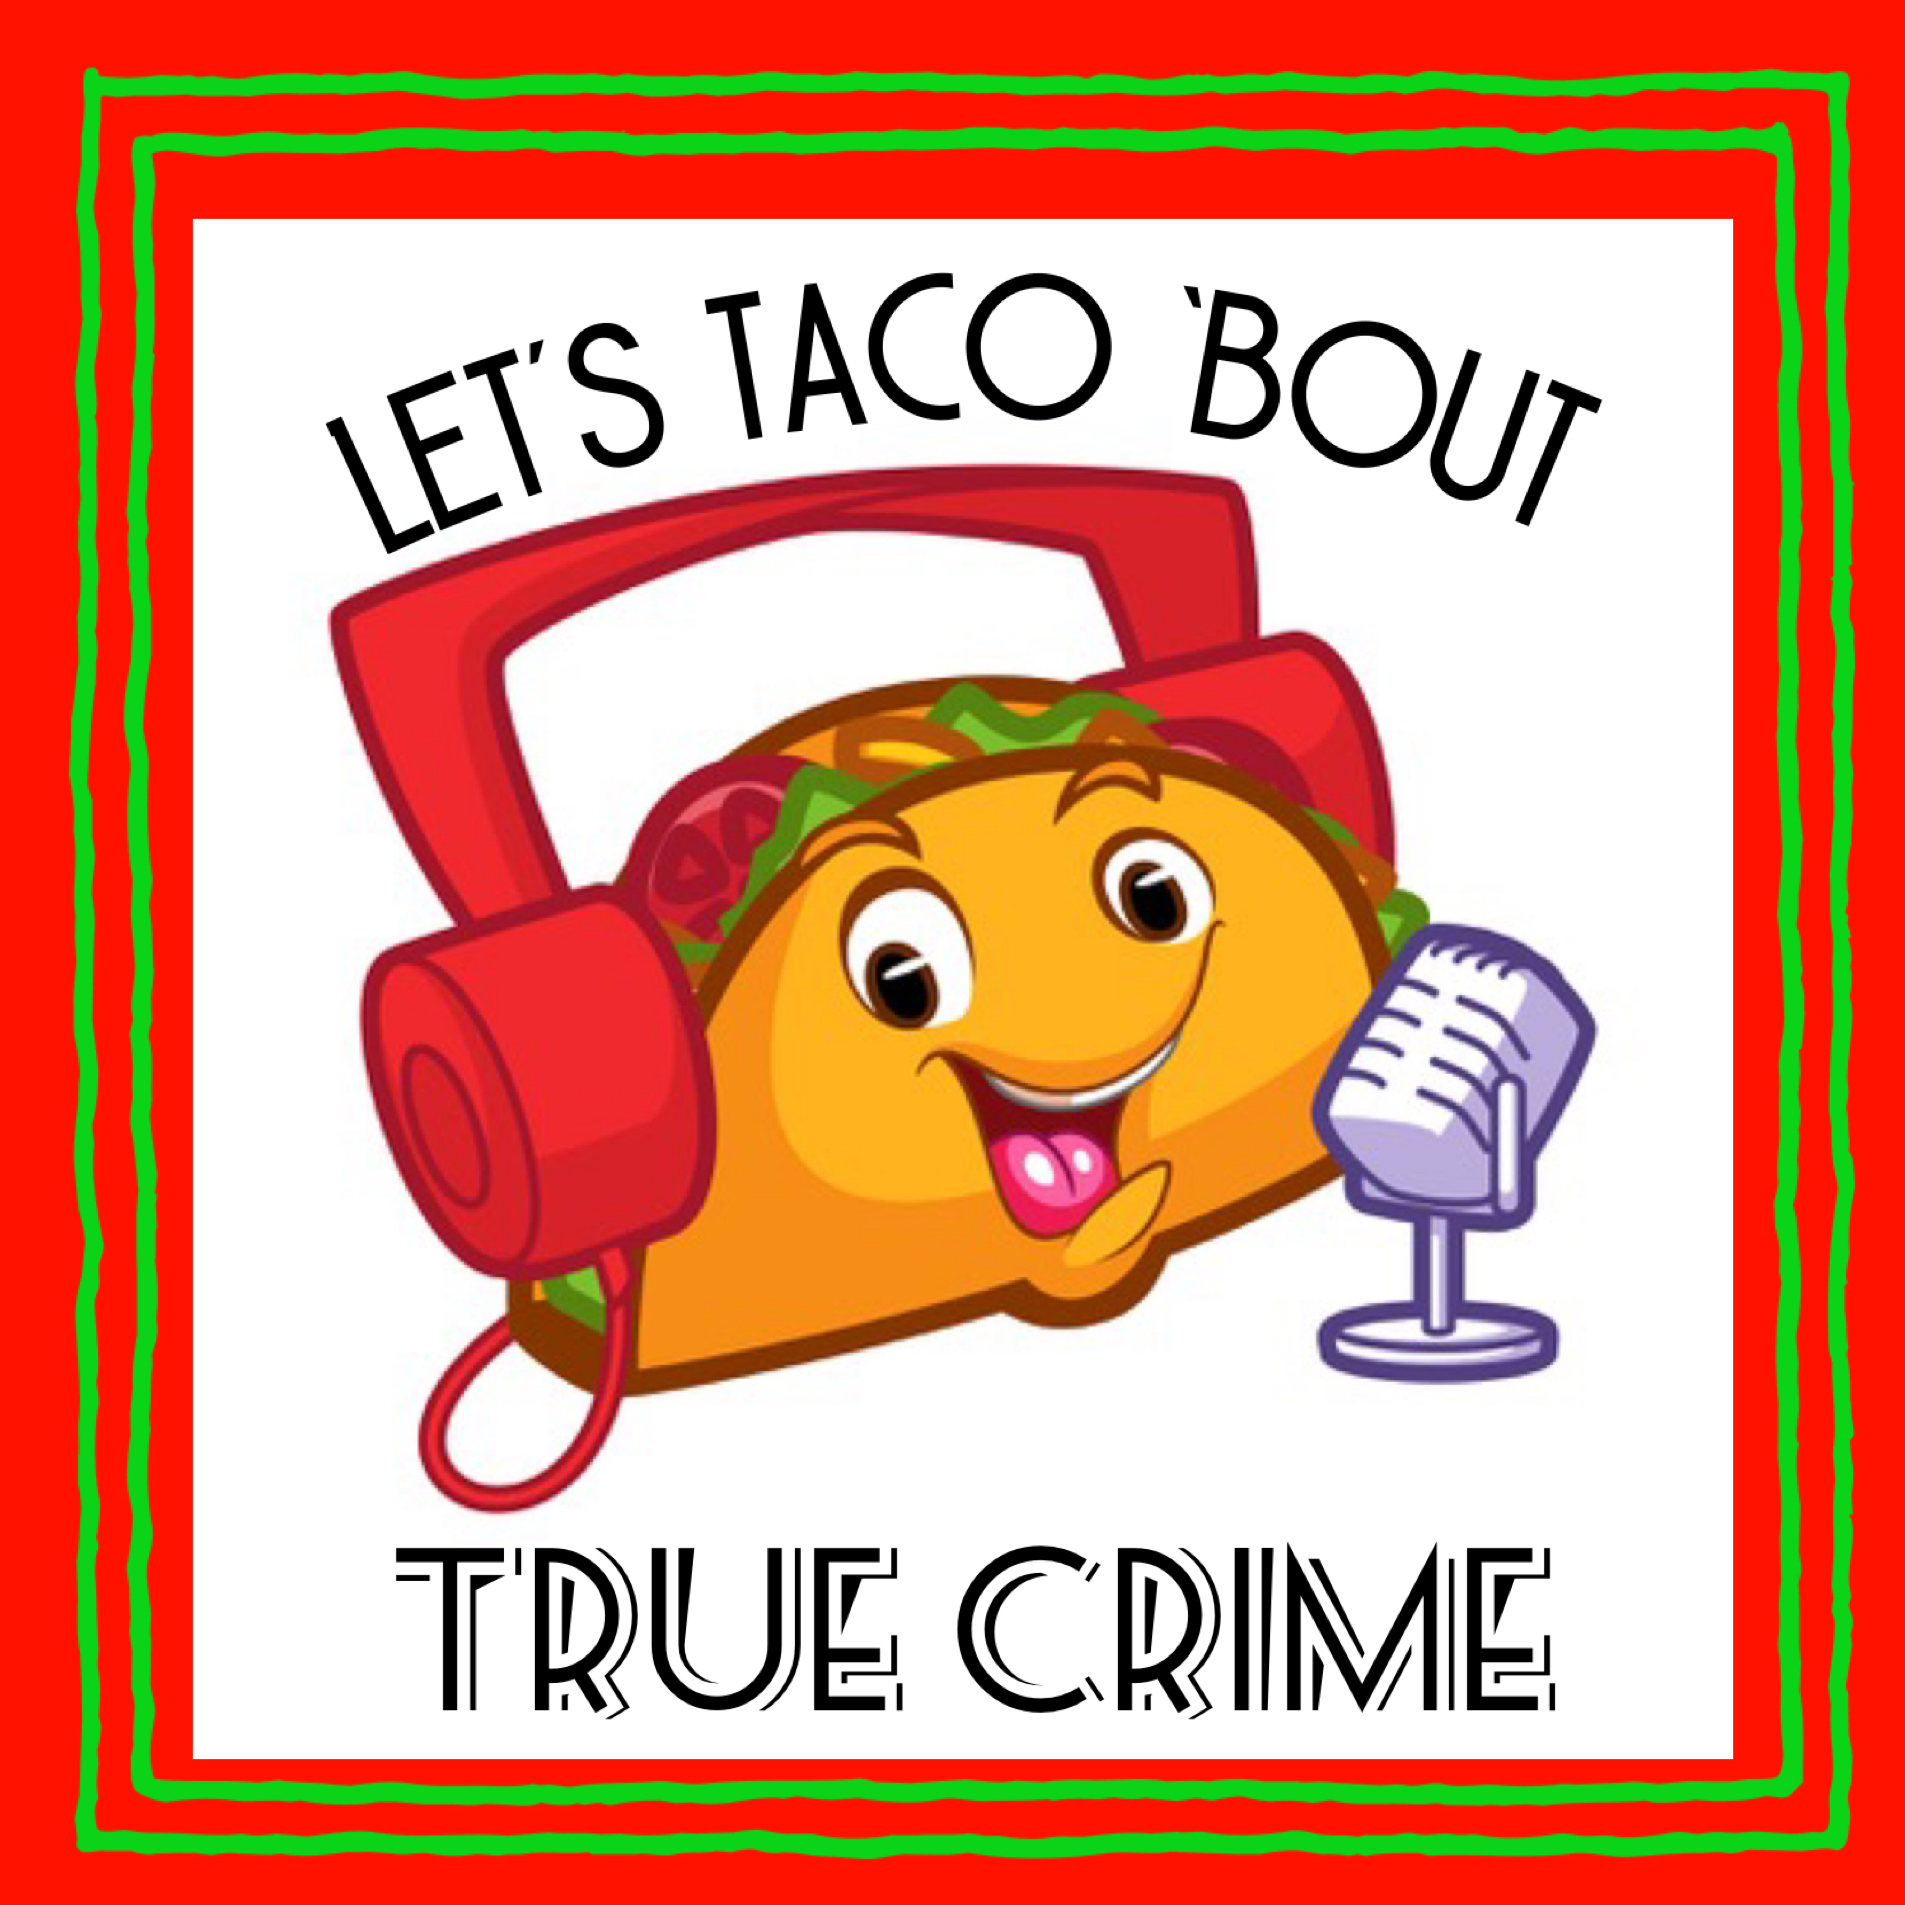 Coming Soon - Let's Taco 'Bout True Crime!